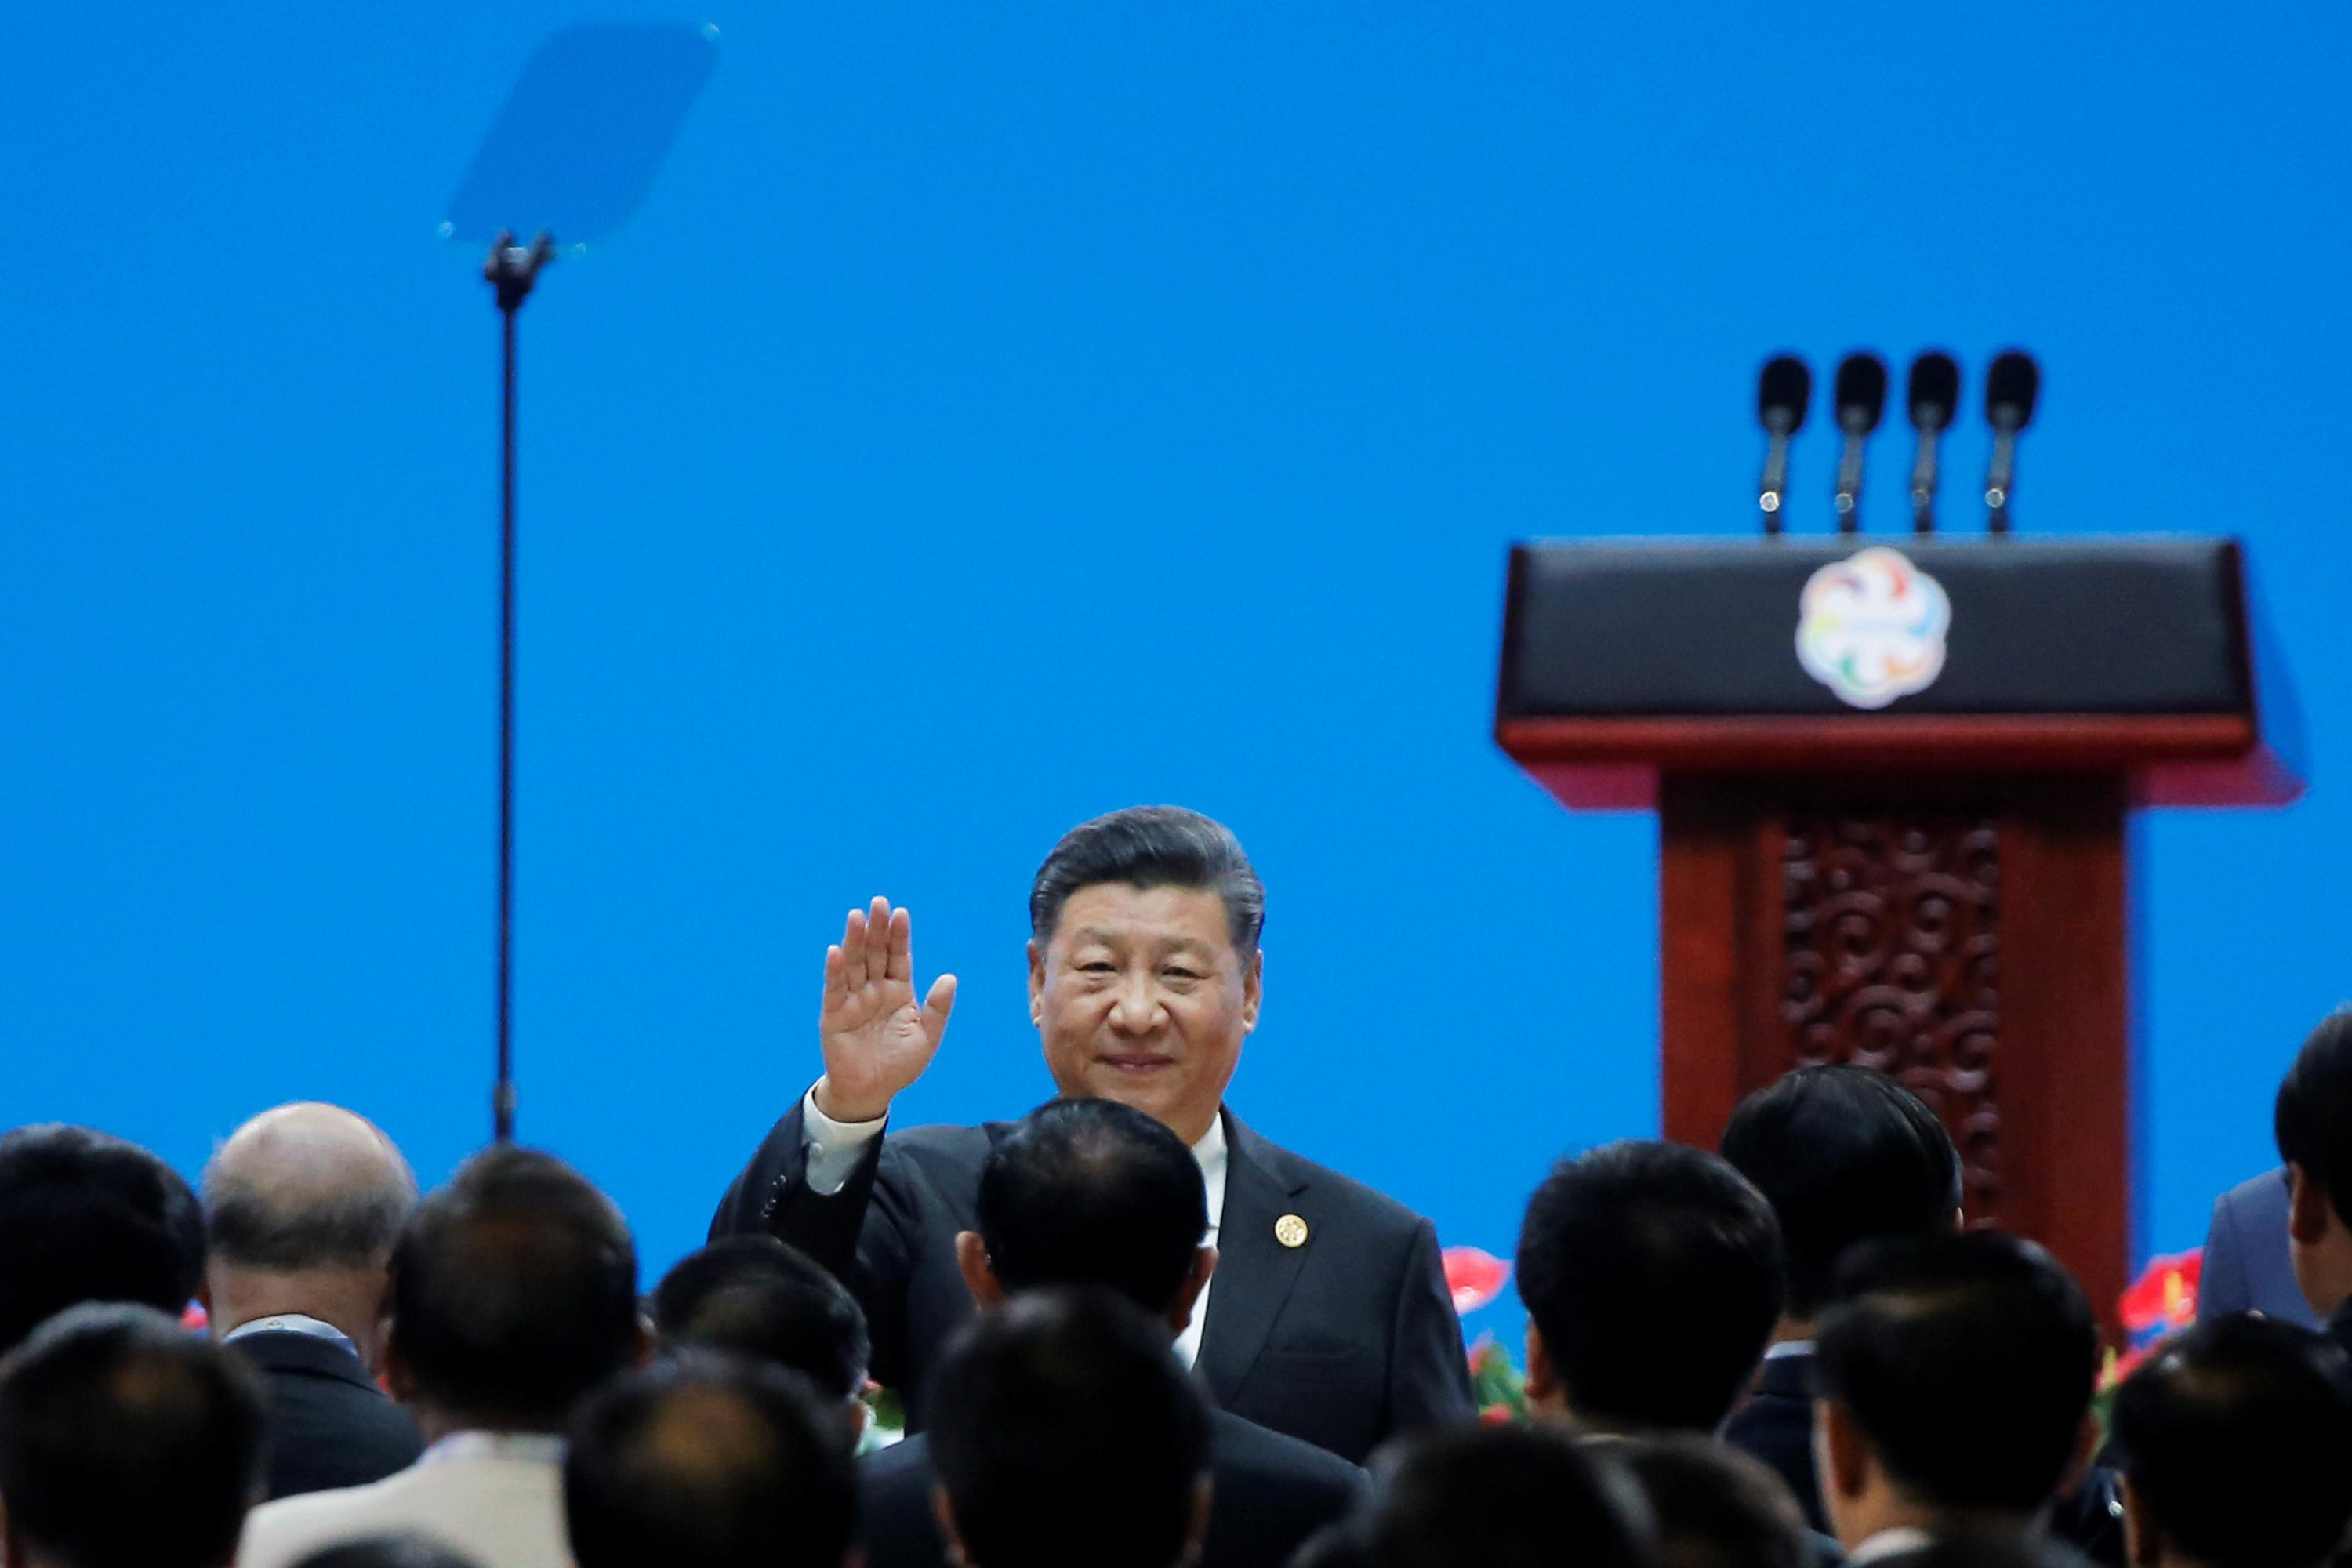 Image result for Amid trade war, China's Xi preaches openness, says no civilization superior